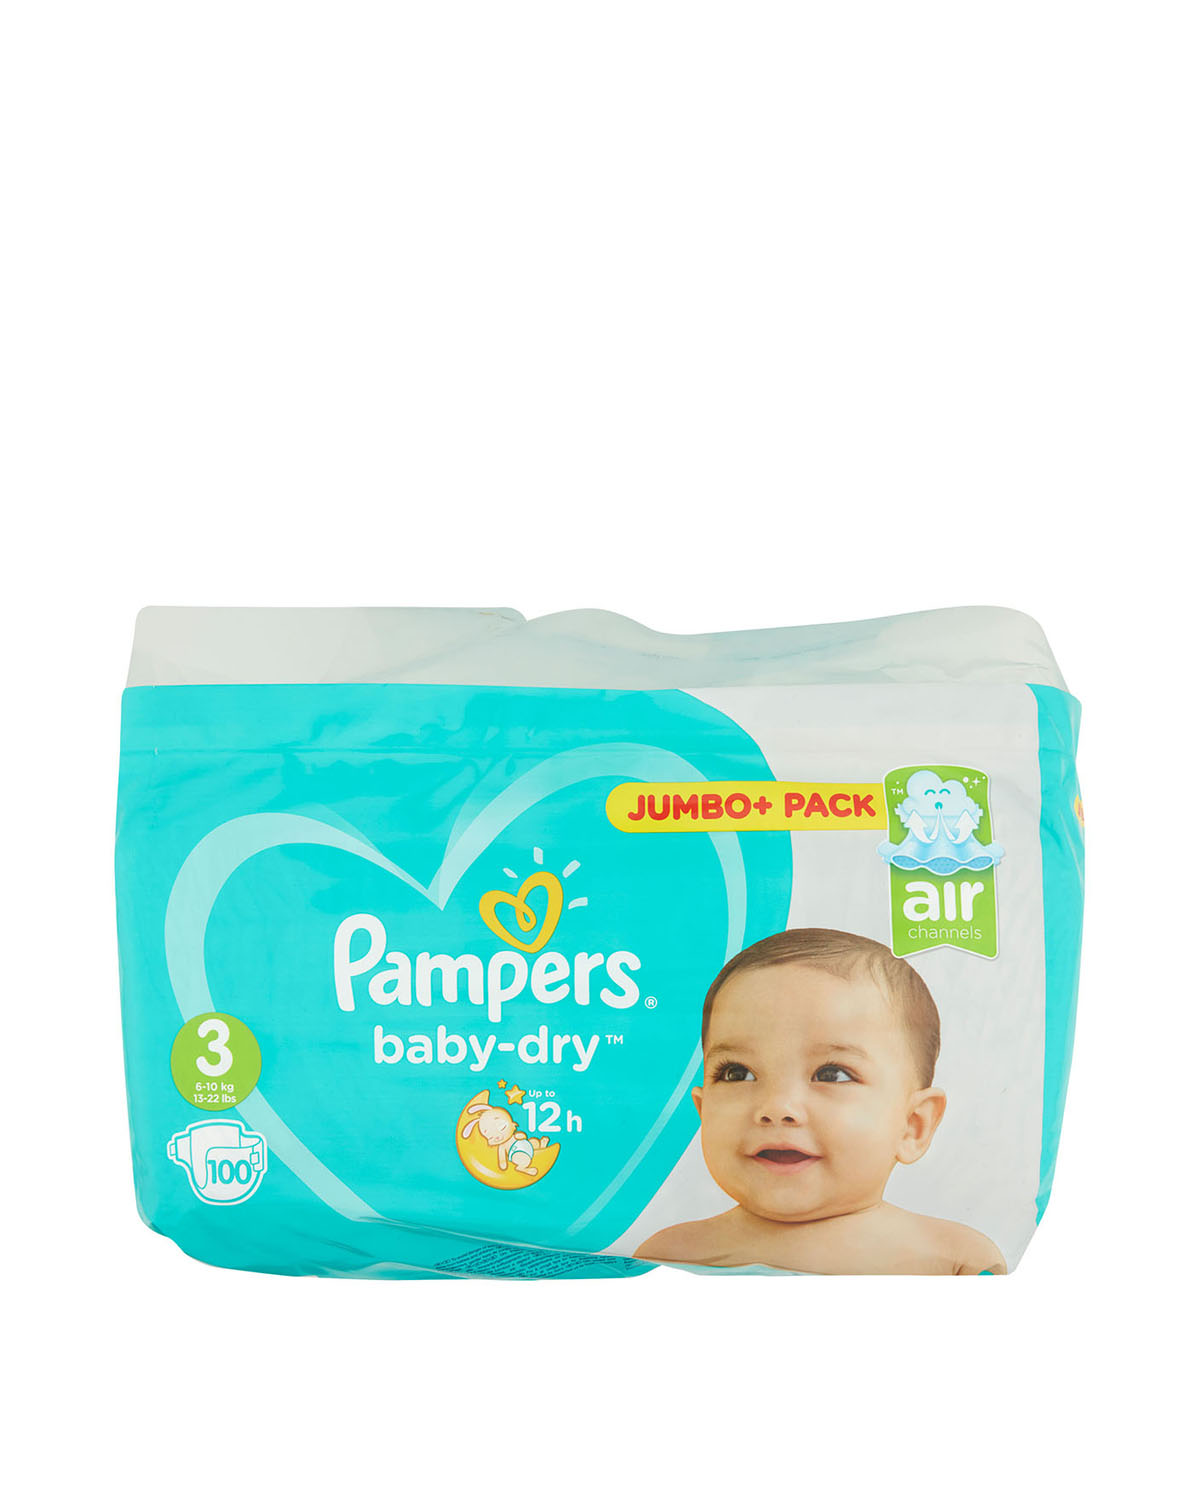 Pampers Baby Dry Size: 3 Jumbo Plus Pack - 100 Nappies